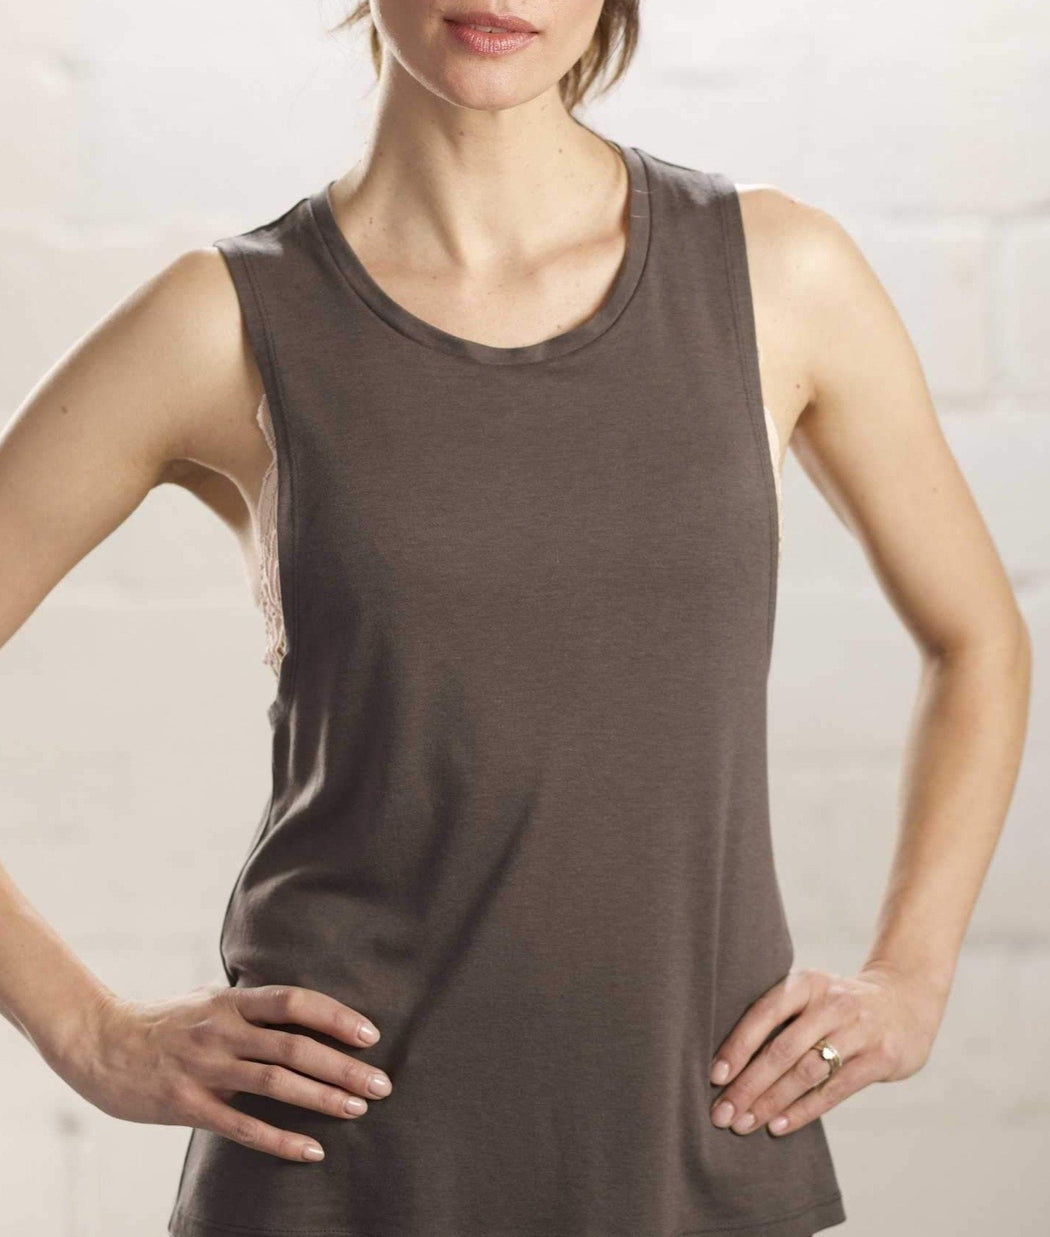 nursing tank for mom